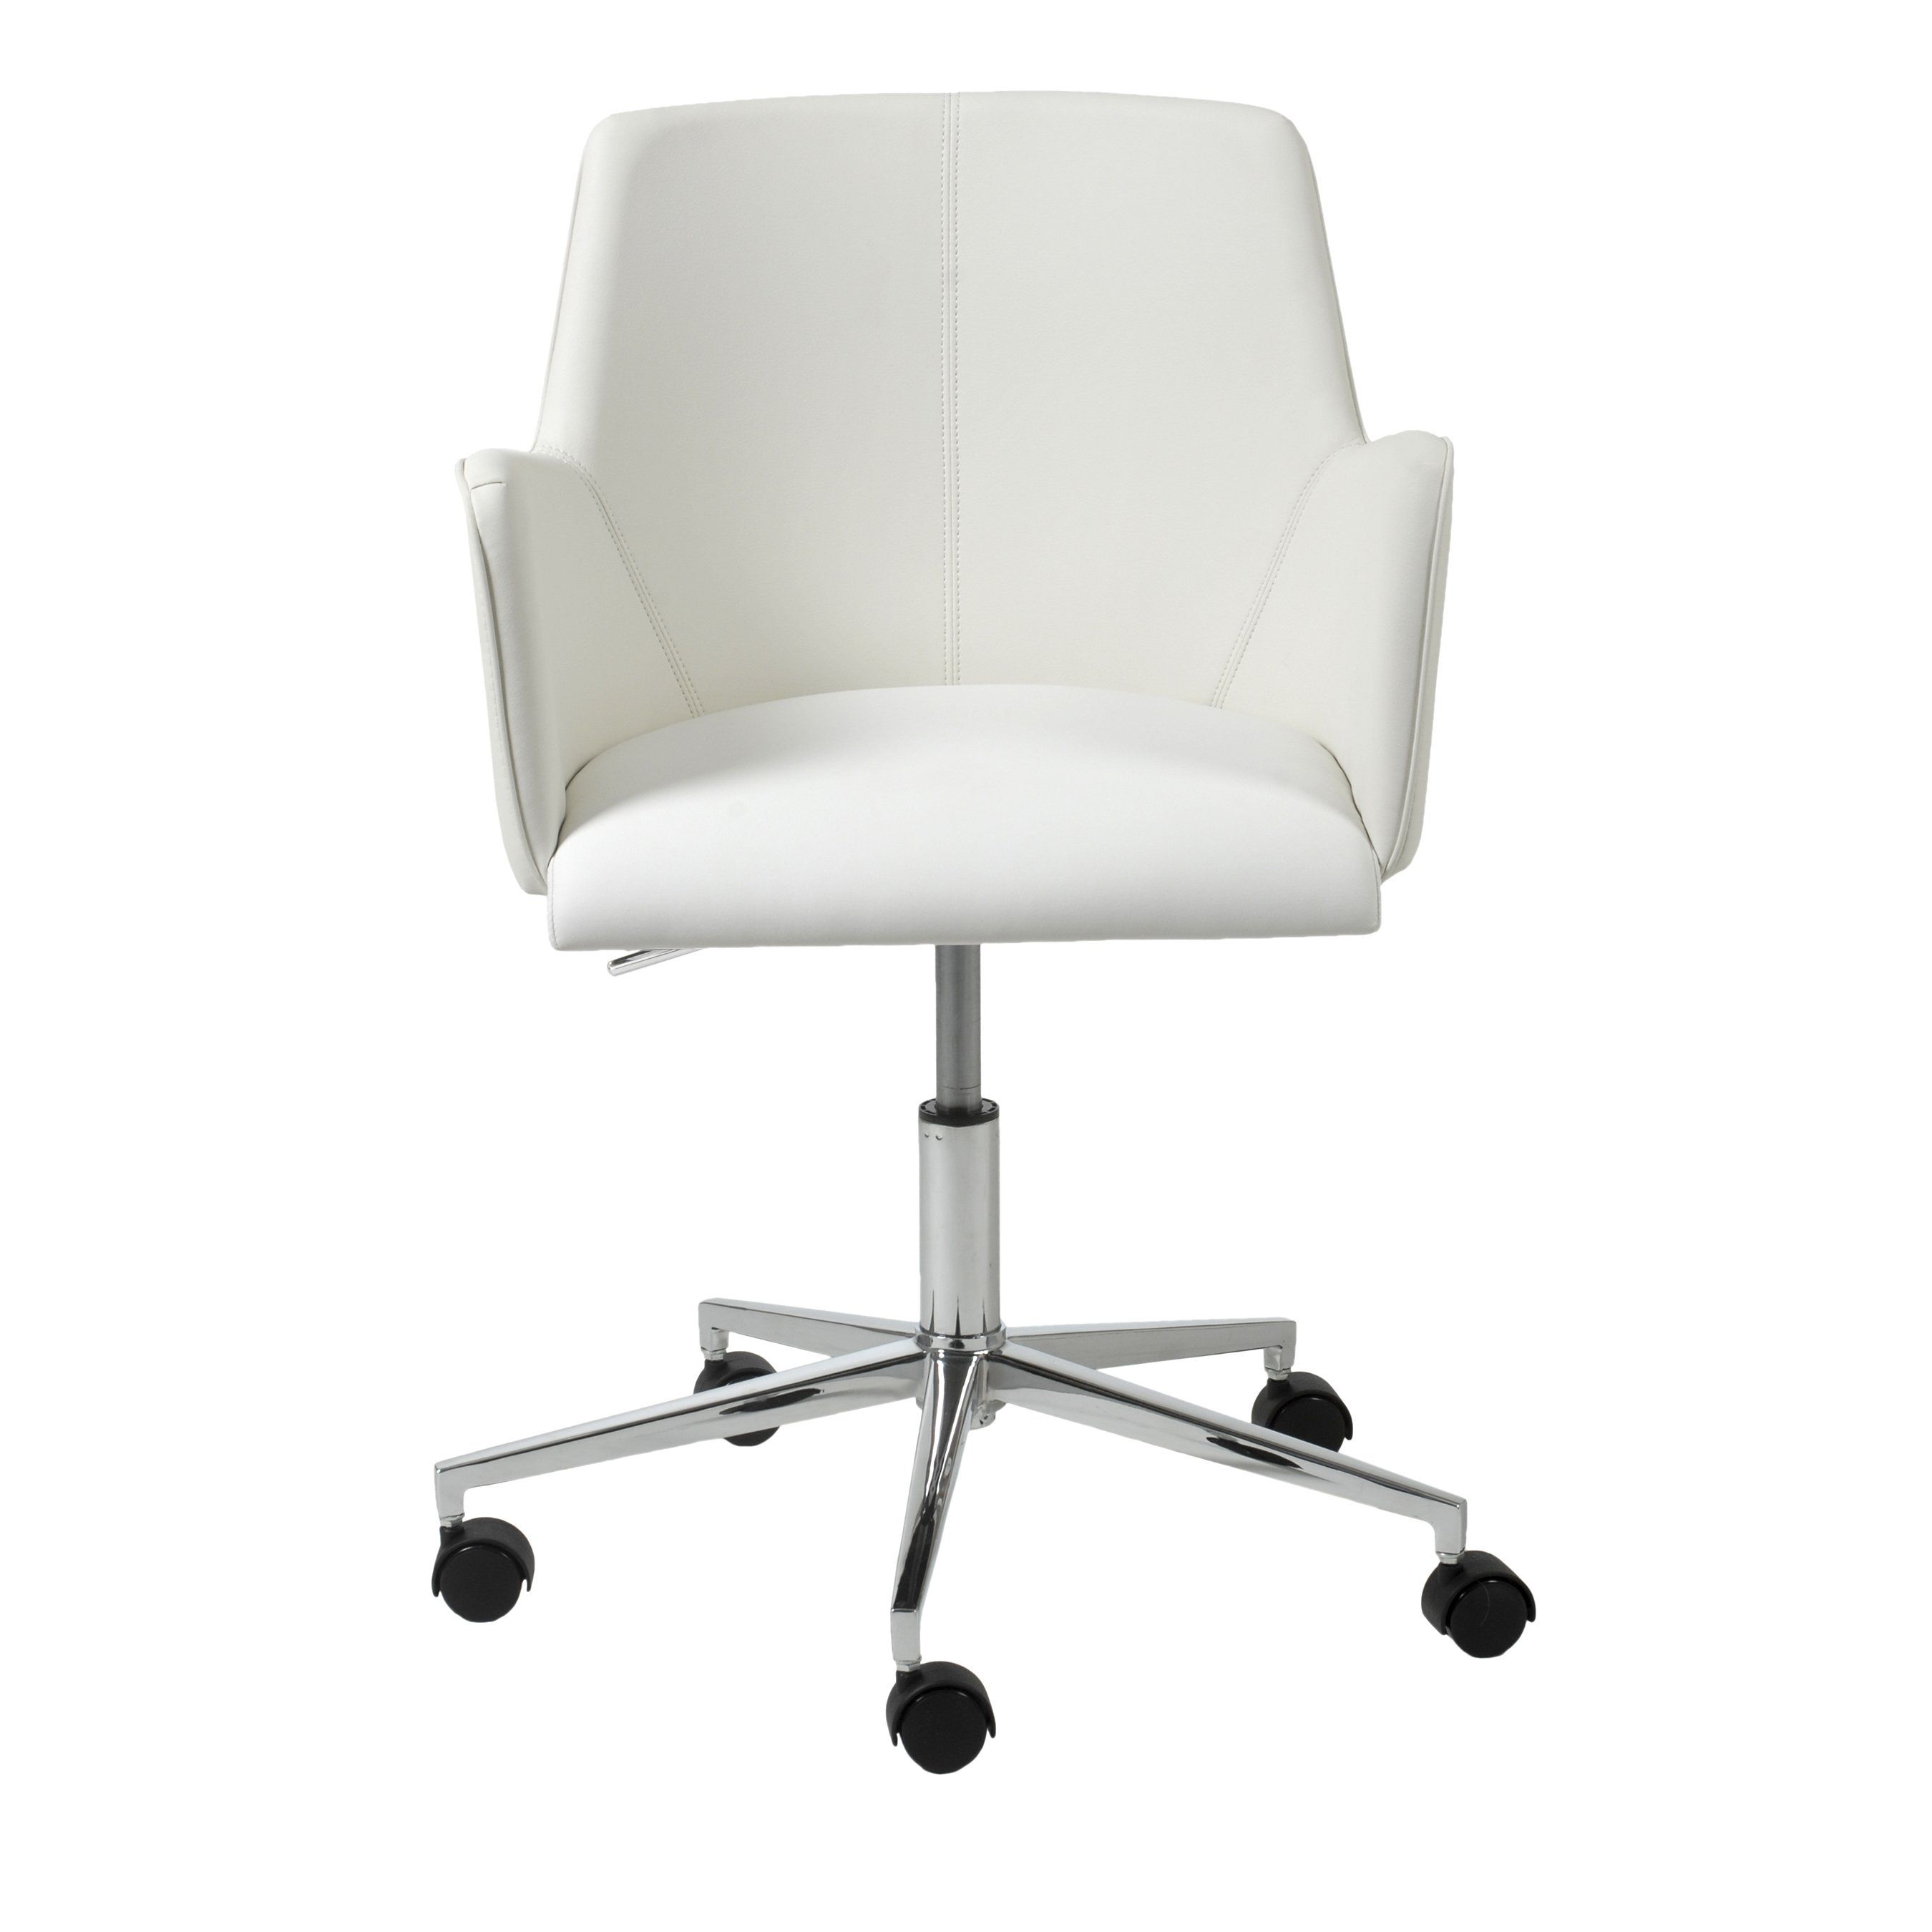 Sunny Office Chair In White With Chromed Steel Base Desk Chair